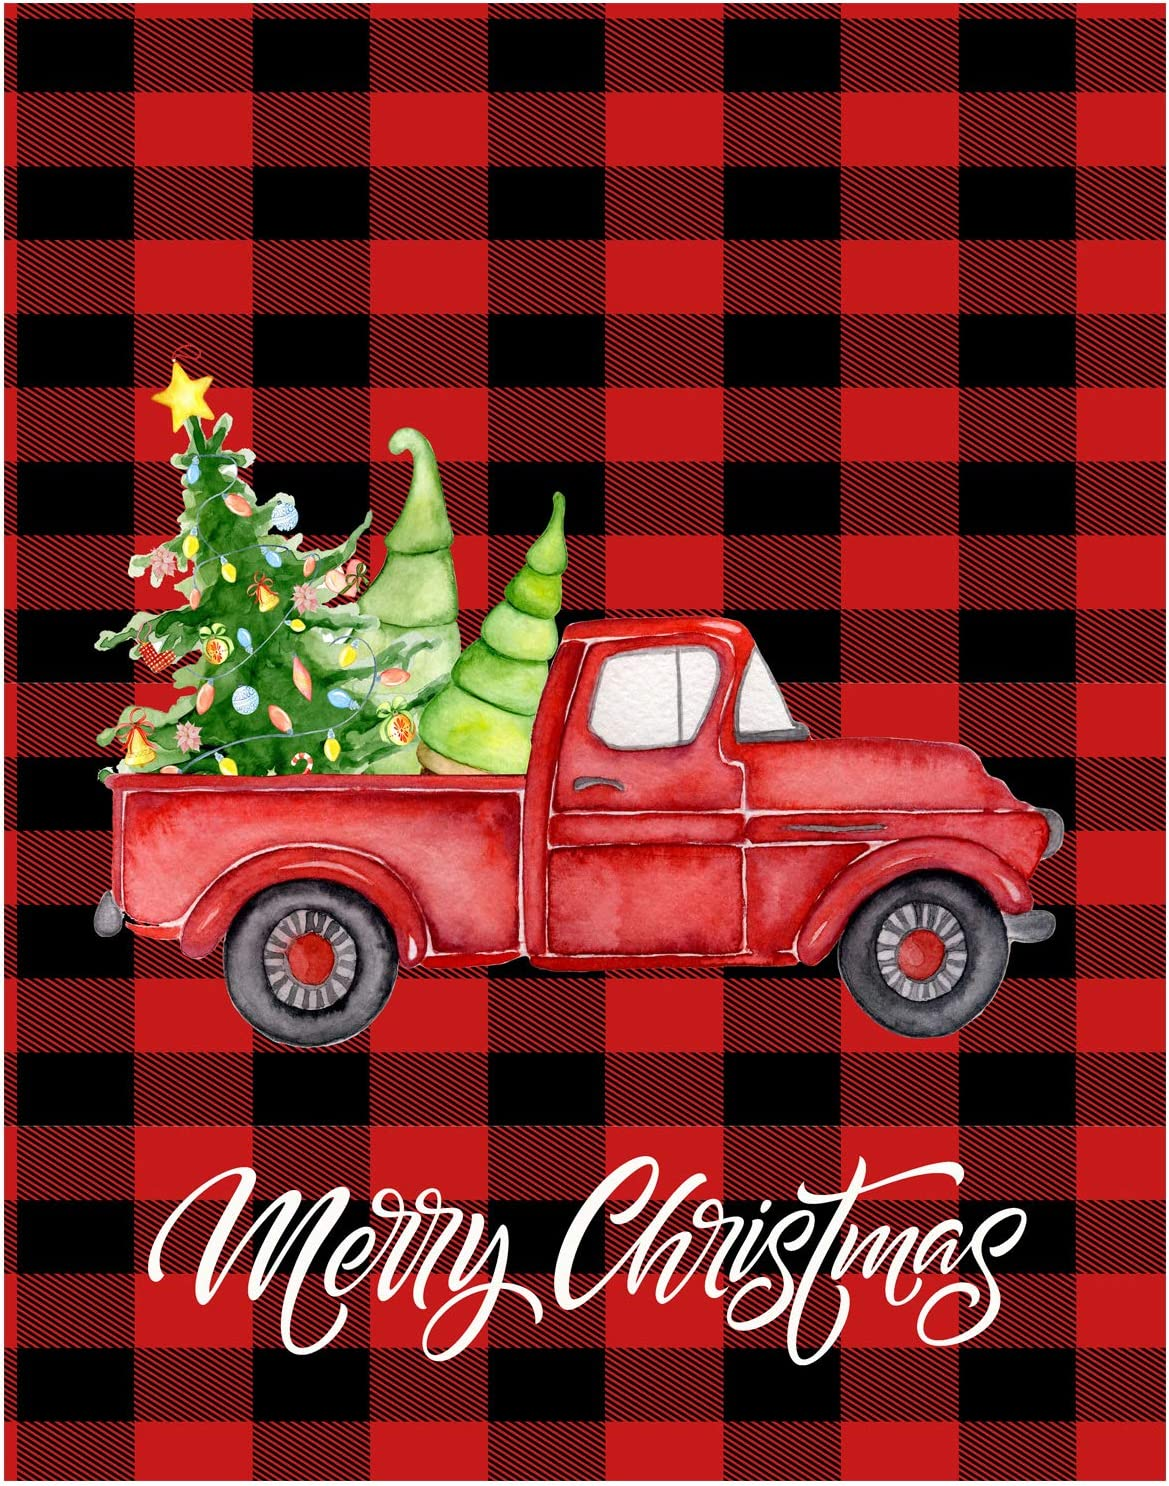 "Wamika Christmas Red Truck Double Sided Garden Yard Flag 28"" x 40"", Red Black Buffalo Check Plaid Xmas New Year Decorative Garden Flag Banner for Outdoor Home Decor Party"